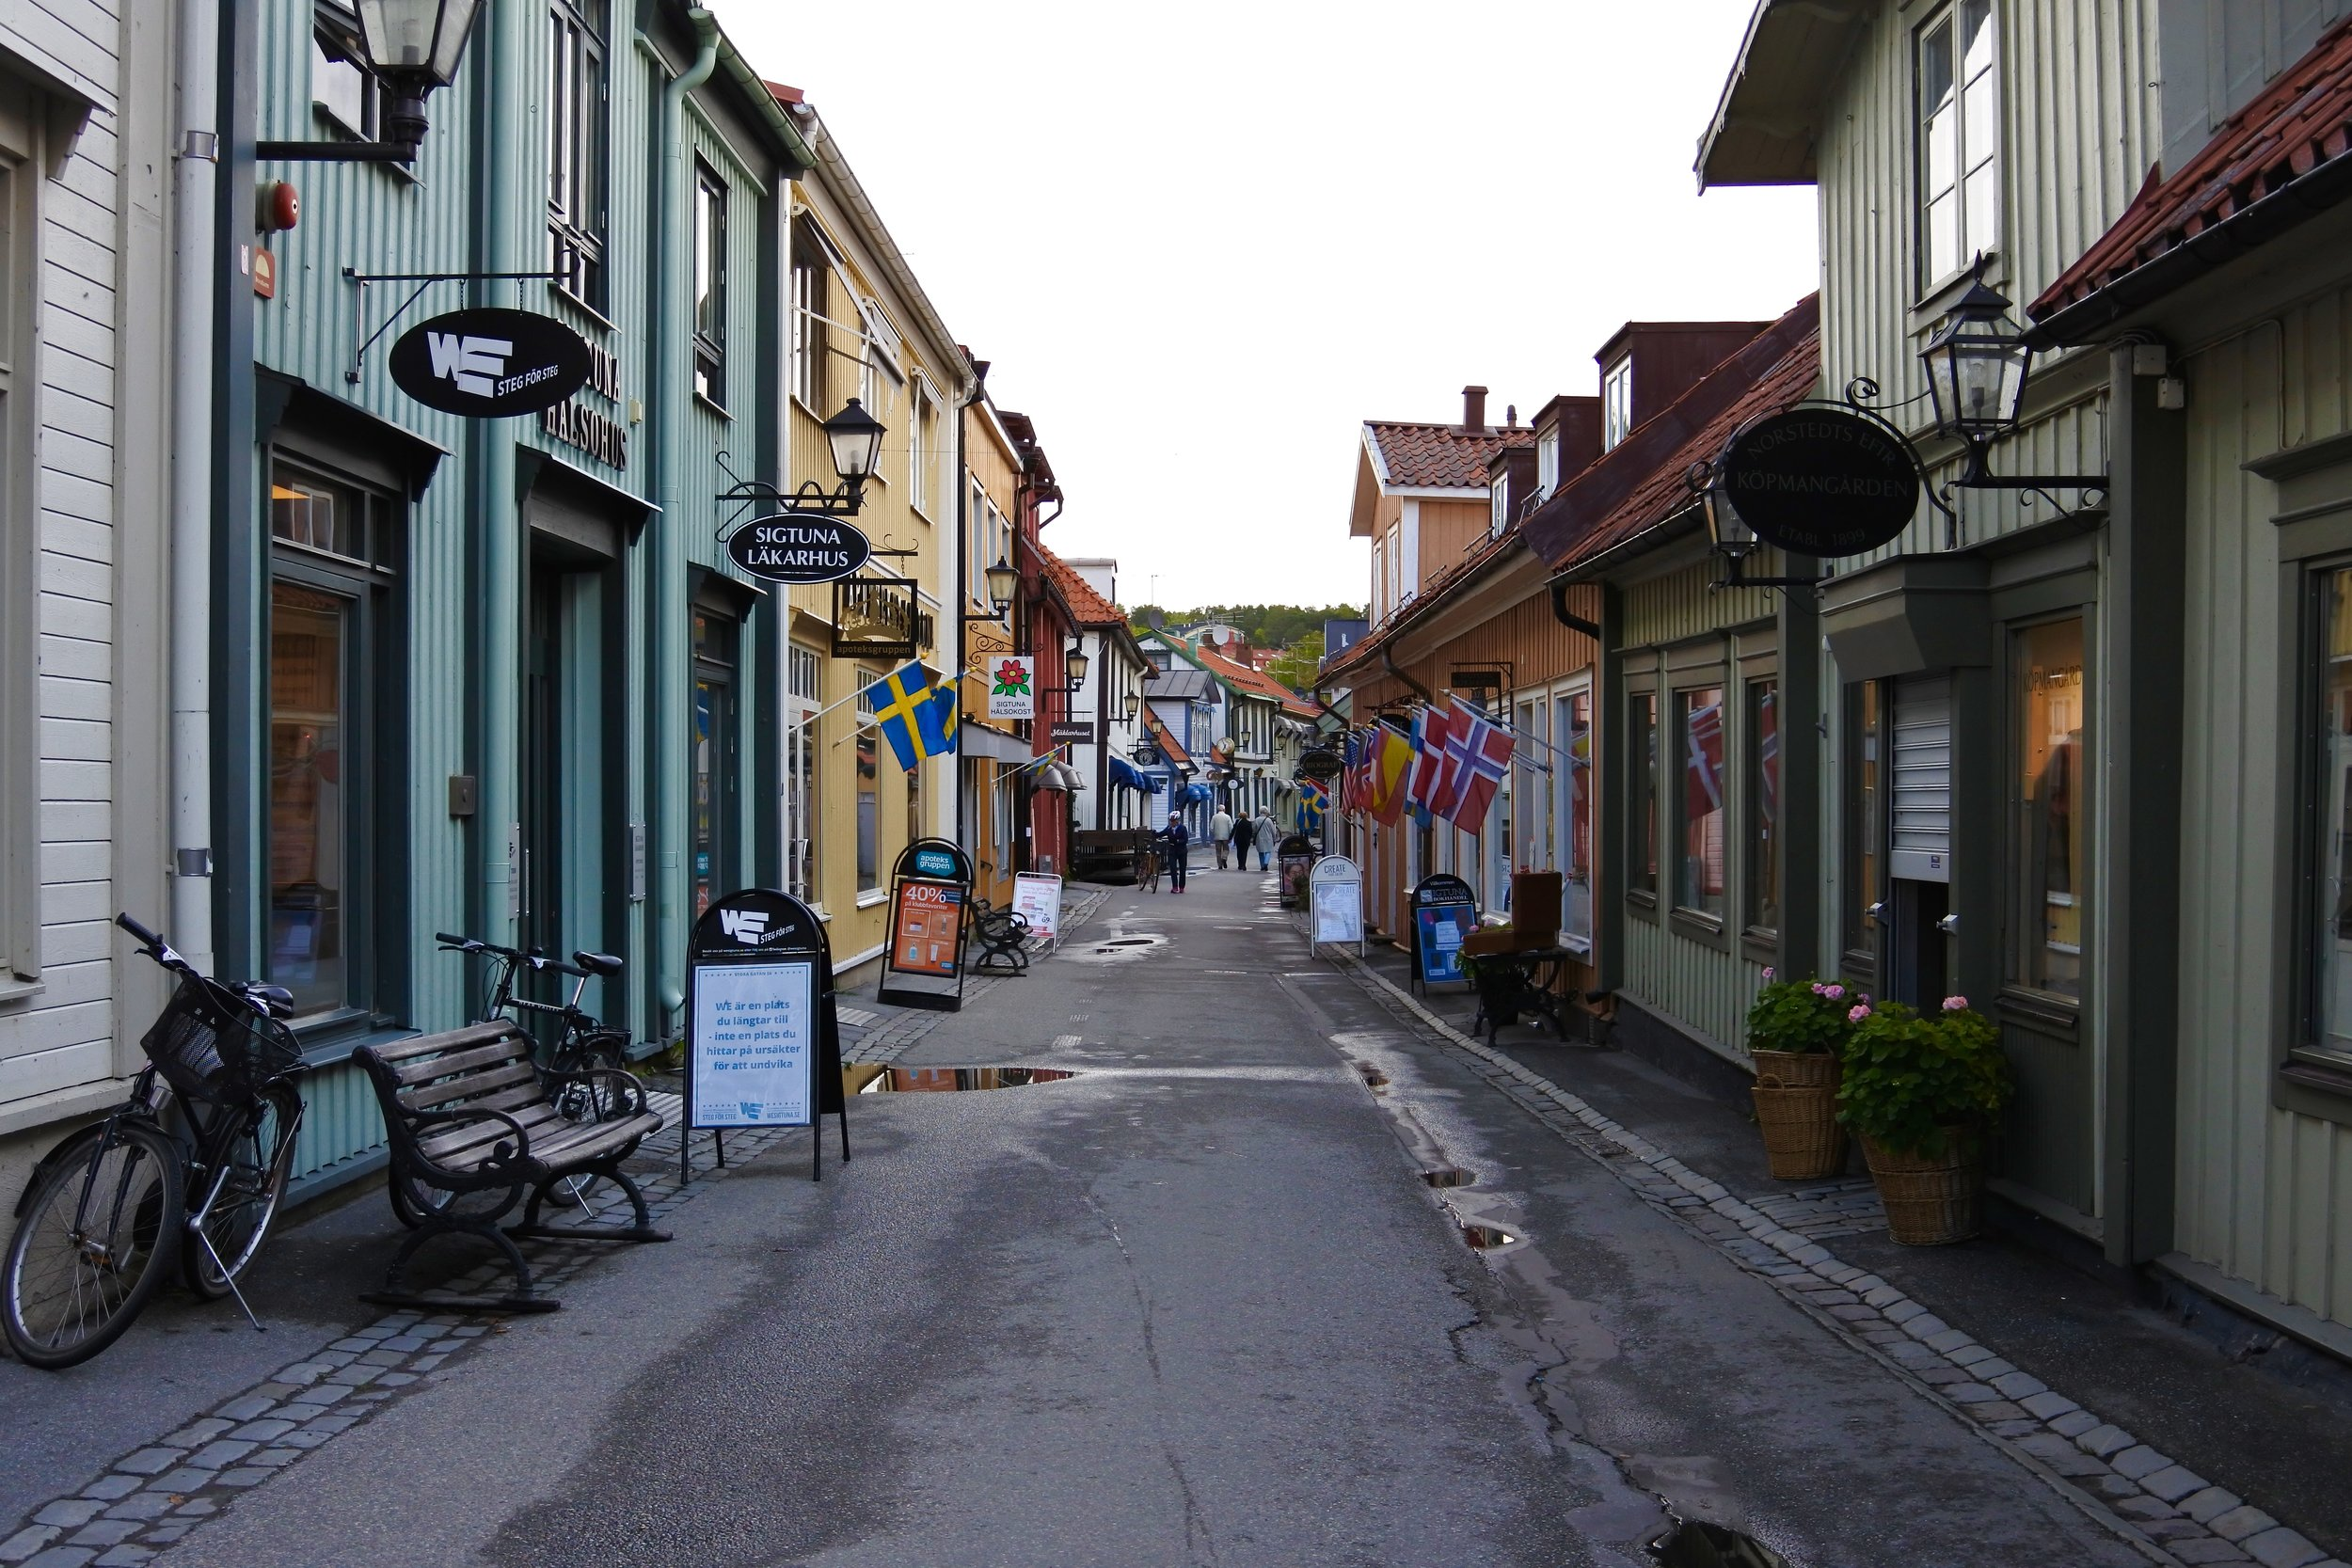 Stora Gatan, the main street in the historical city center.